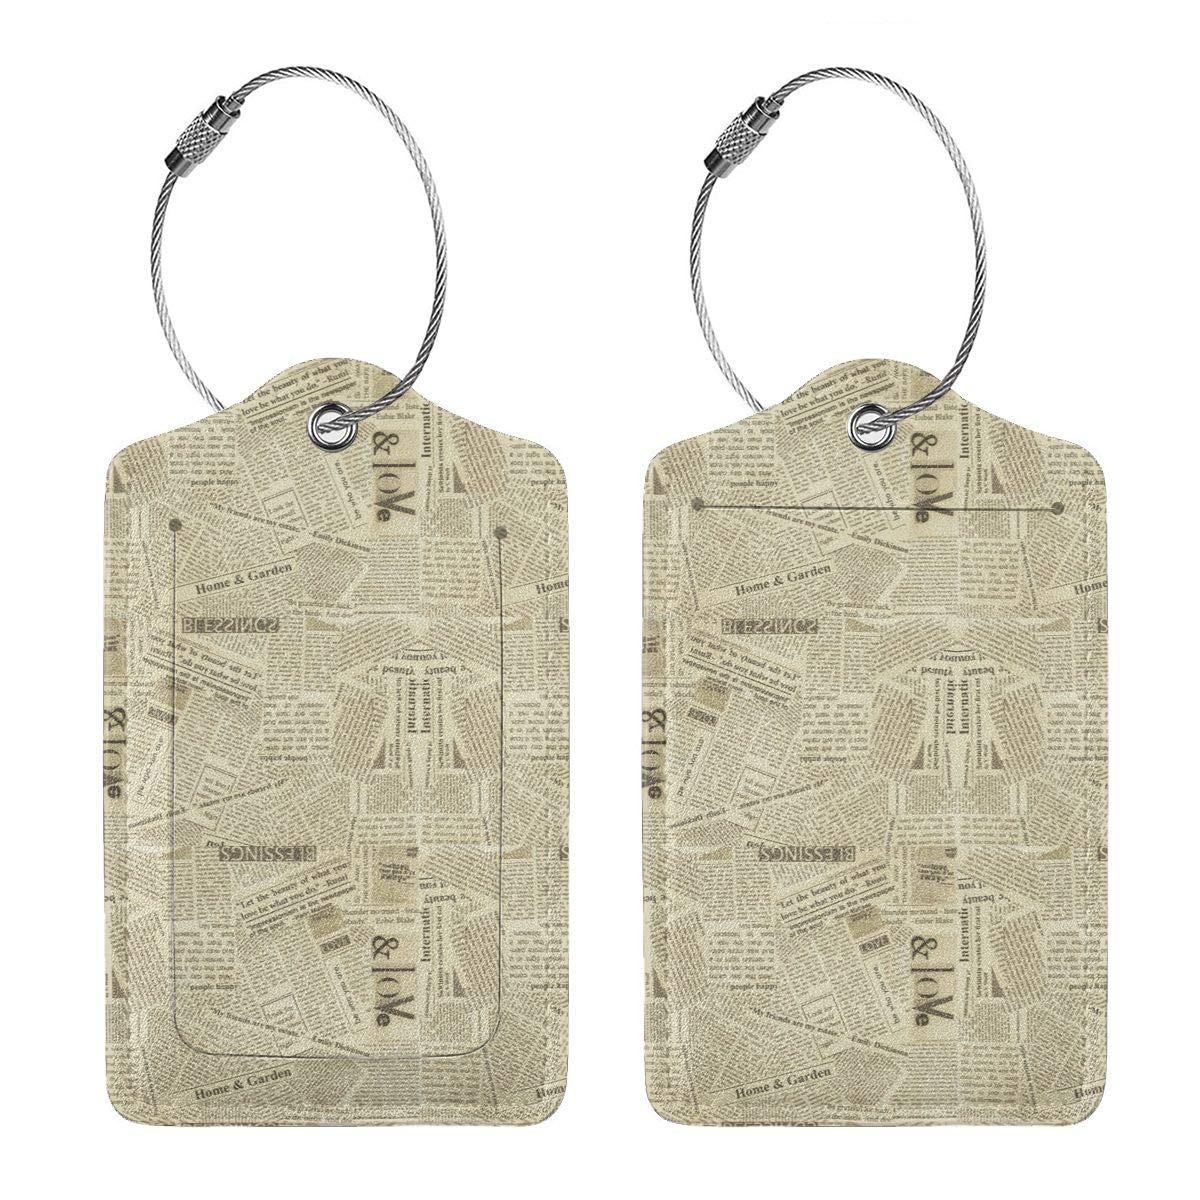 Leather Luggage Tags Full Privacy Cover and Stainless Steel Loop 1 2 4 Pcs Set Retro Newspaper 2.7 x 4.6 Blank Tag Key Tags for Instrument Baggage Bag Gift